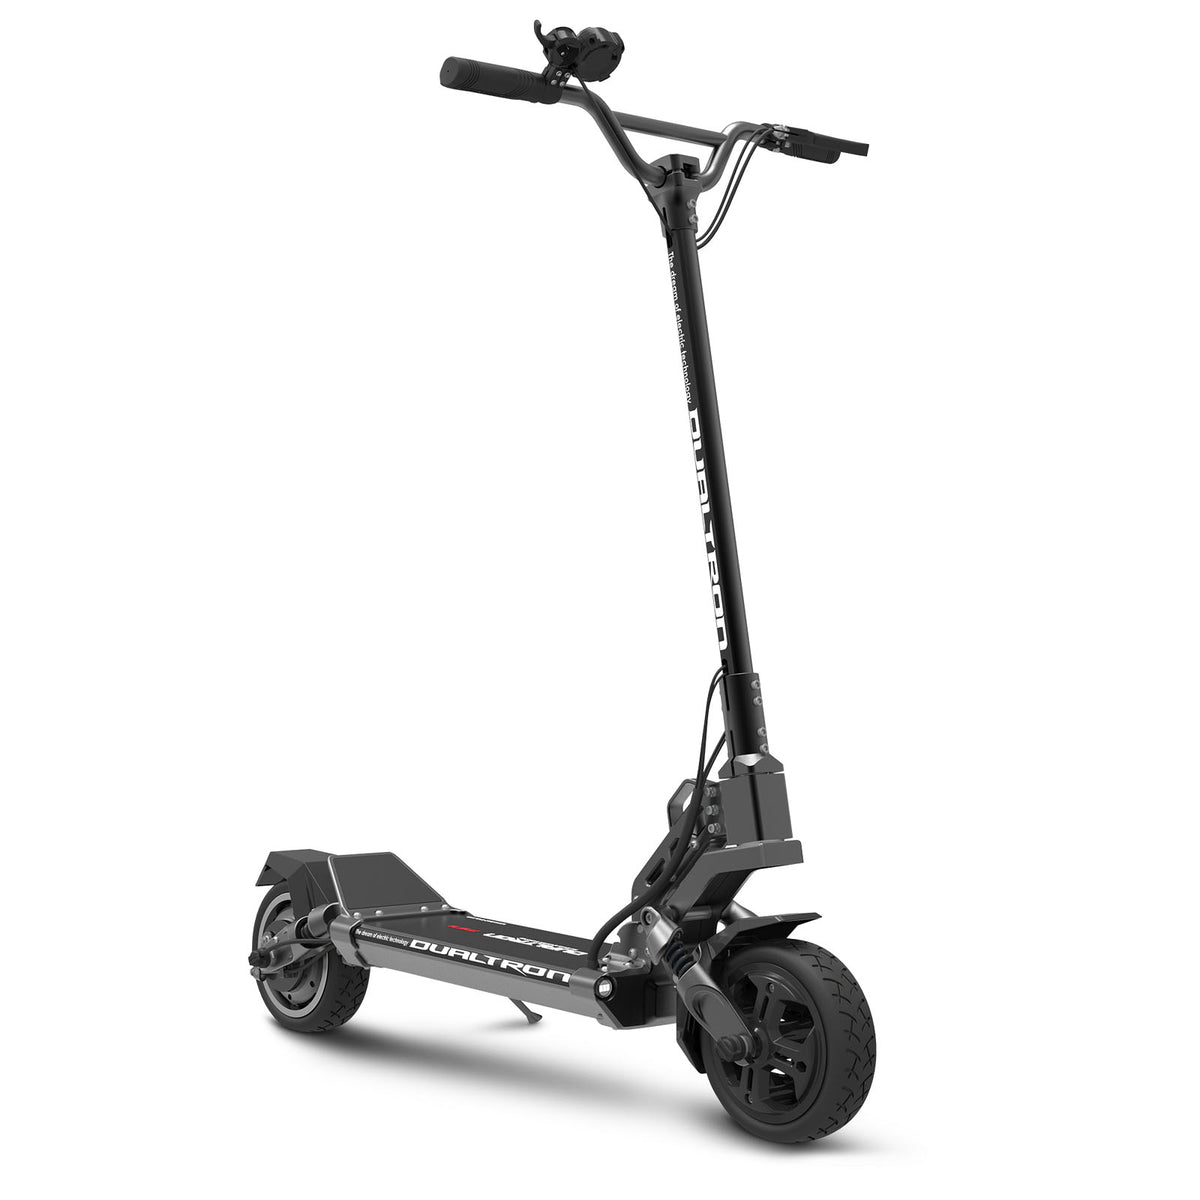 minimotors dualtron mini electric scooter right side